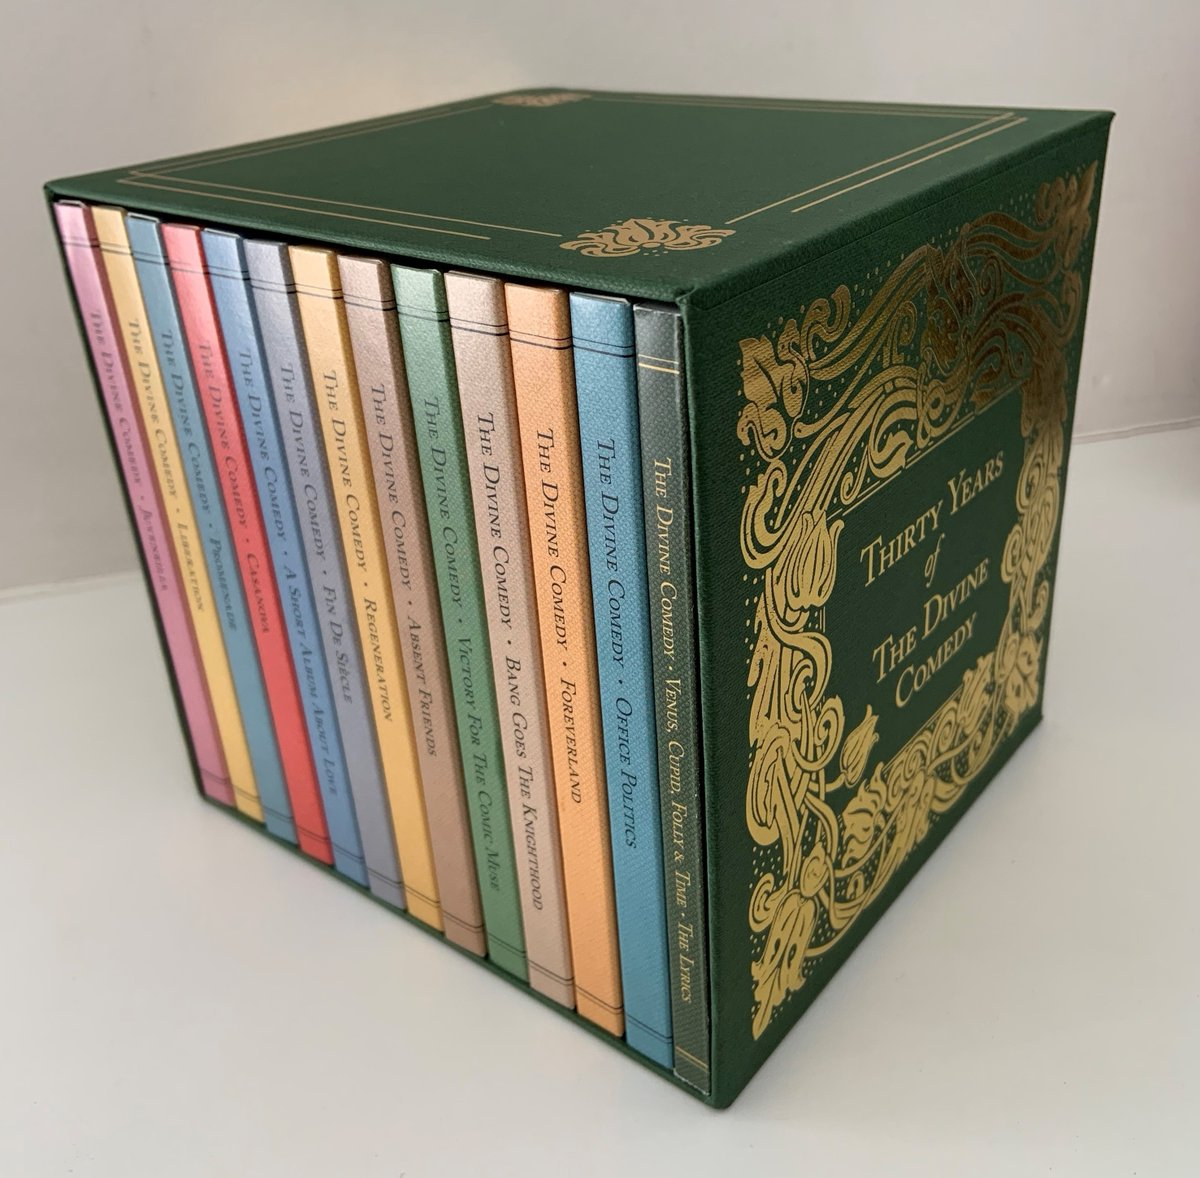 Spotlight on 'Venus, Cupid, Folly & Time' CD boxset, released 9th October - thedivinecomedy.com/news/spotlight… Pre-order at our webstore: thedivinecomedy.tmstor.es #TheDivineComedy30 #TheDivineComedy #Boxset